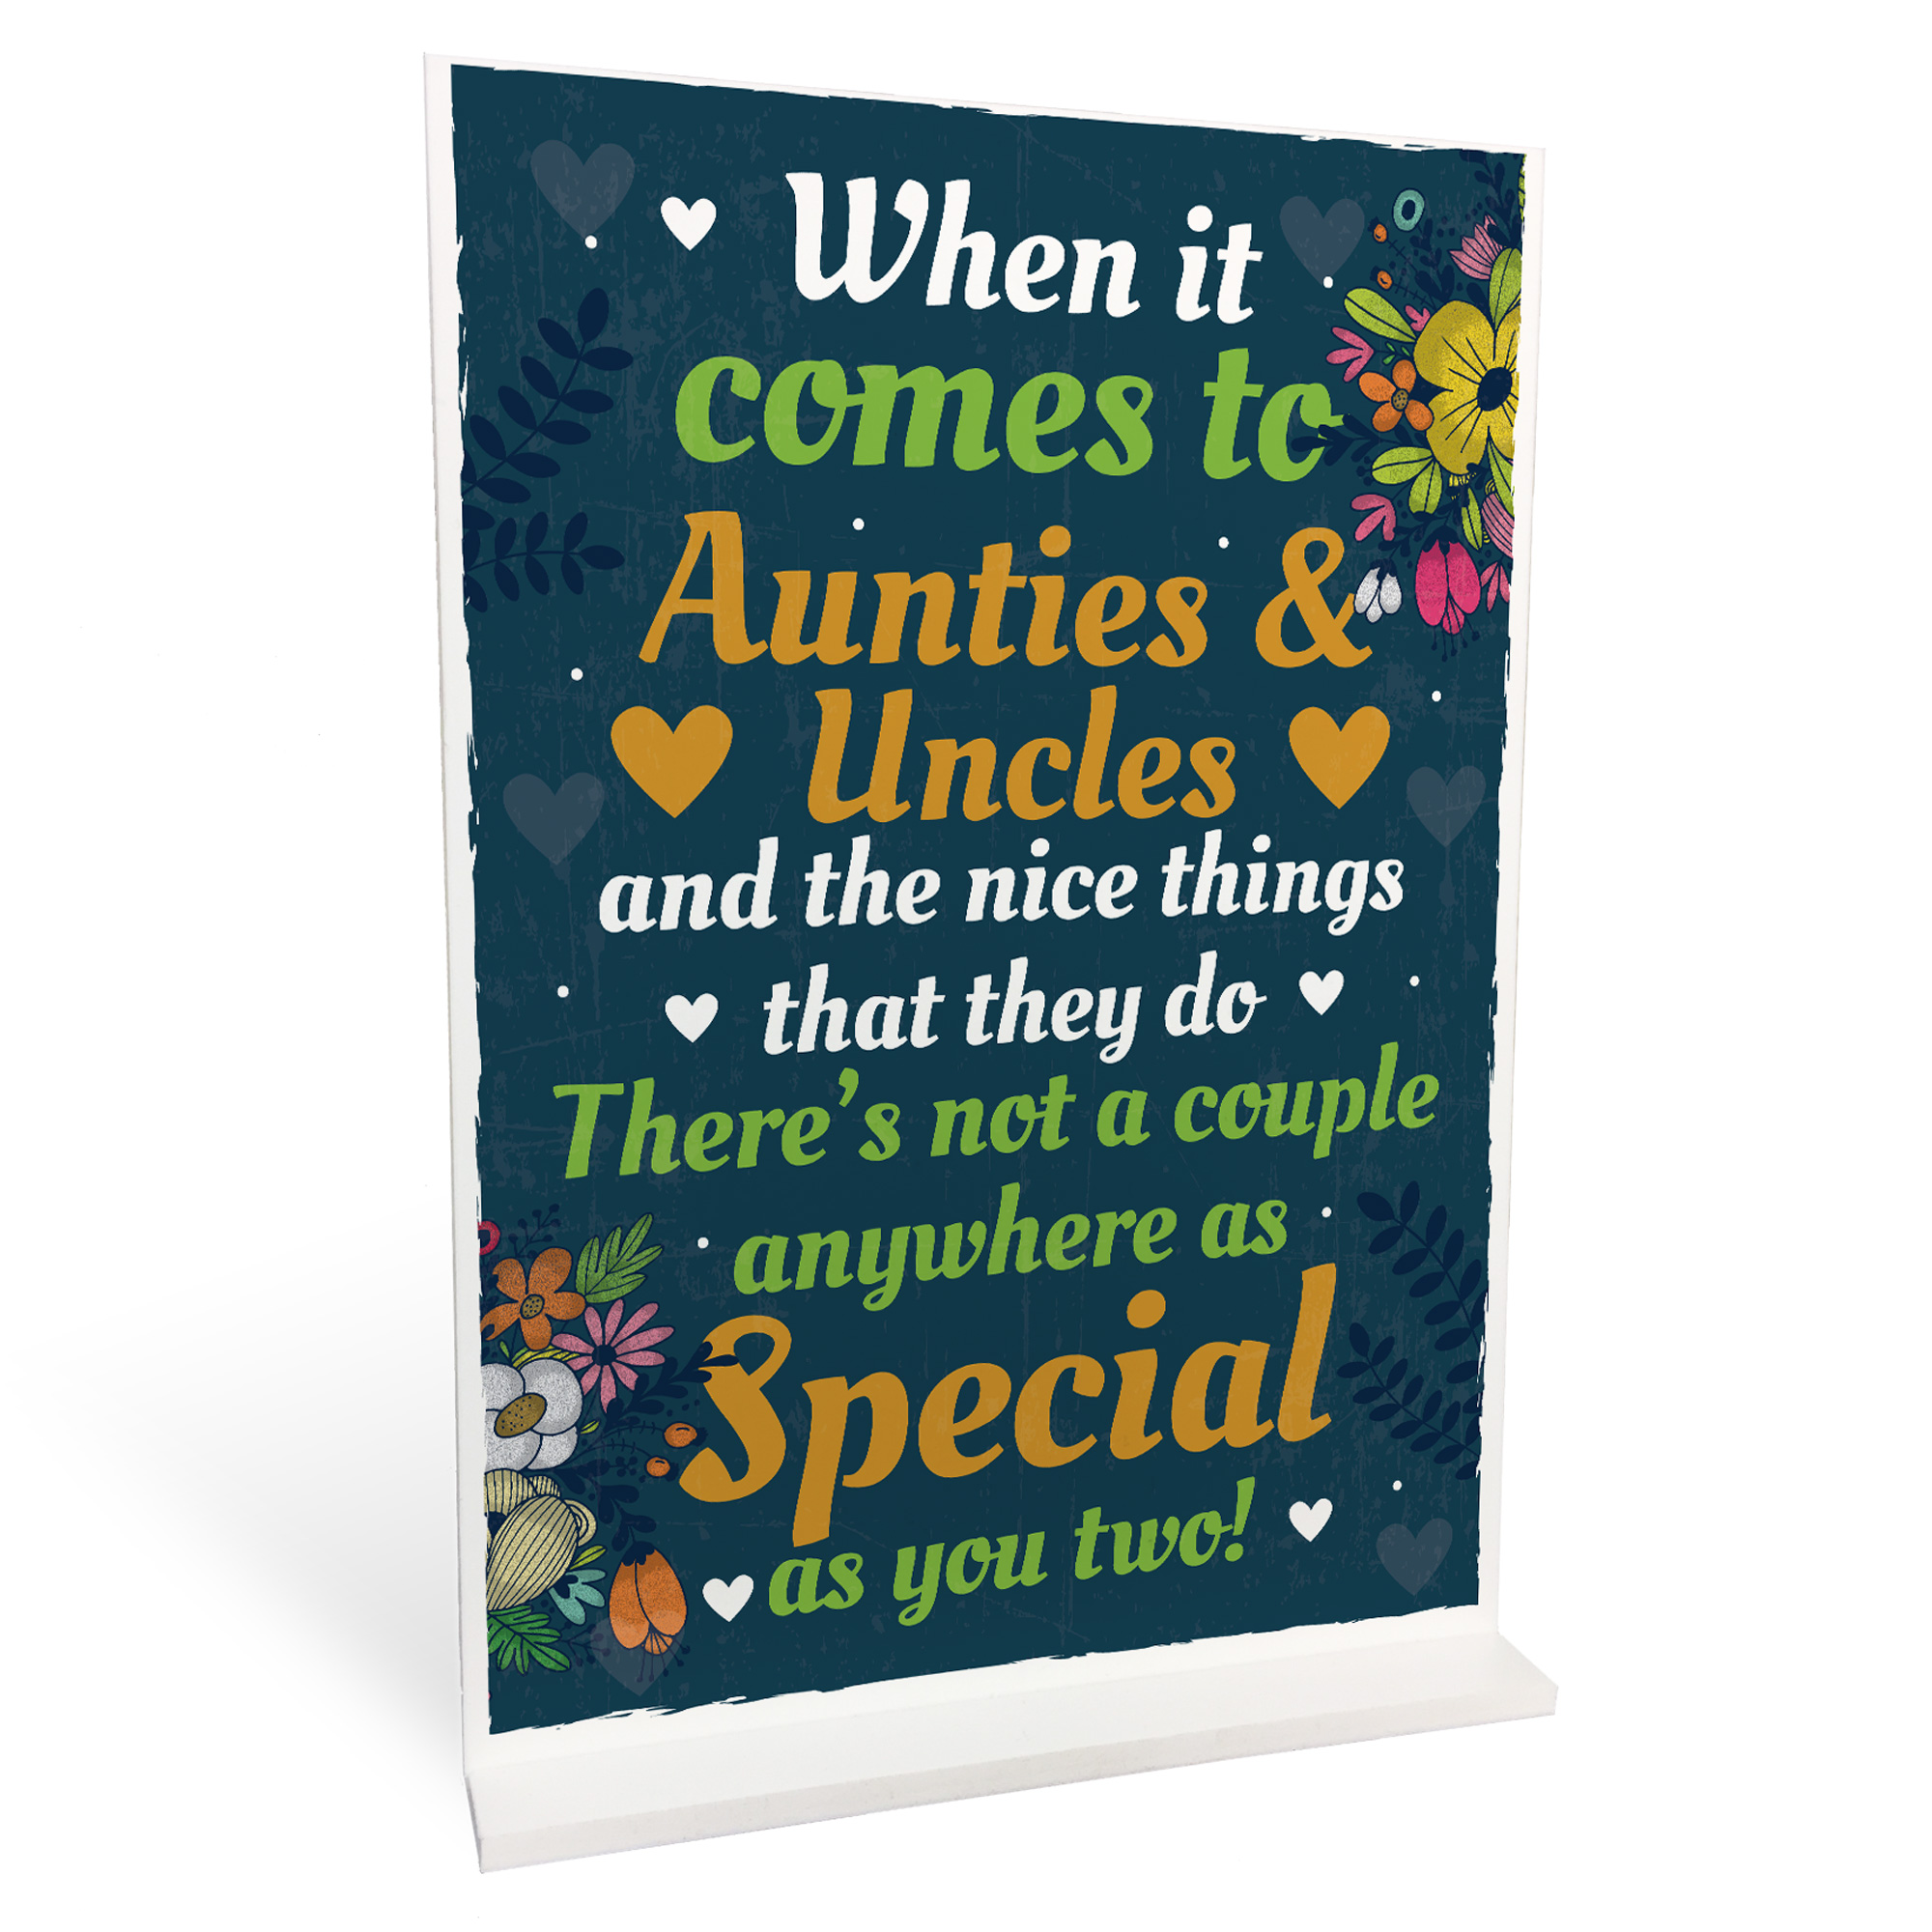 Details About Auntie And Uncle Christmas Birthday Card Gift From Niece Nephew Thank You Plaque